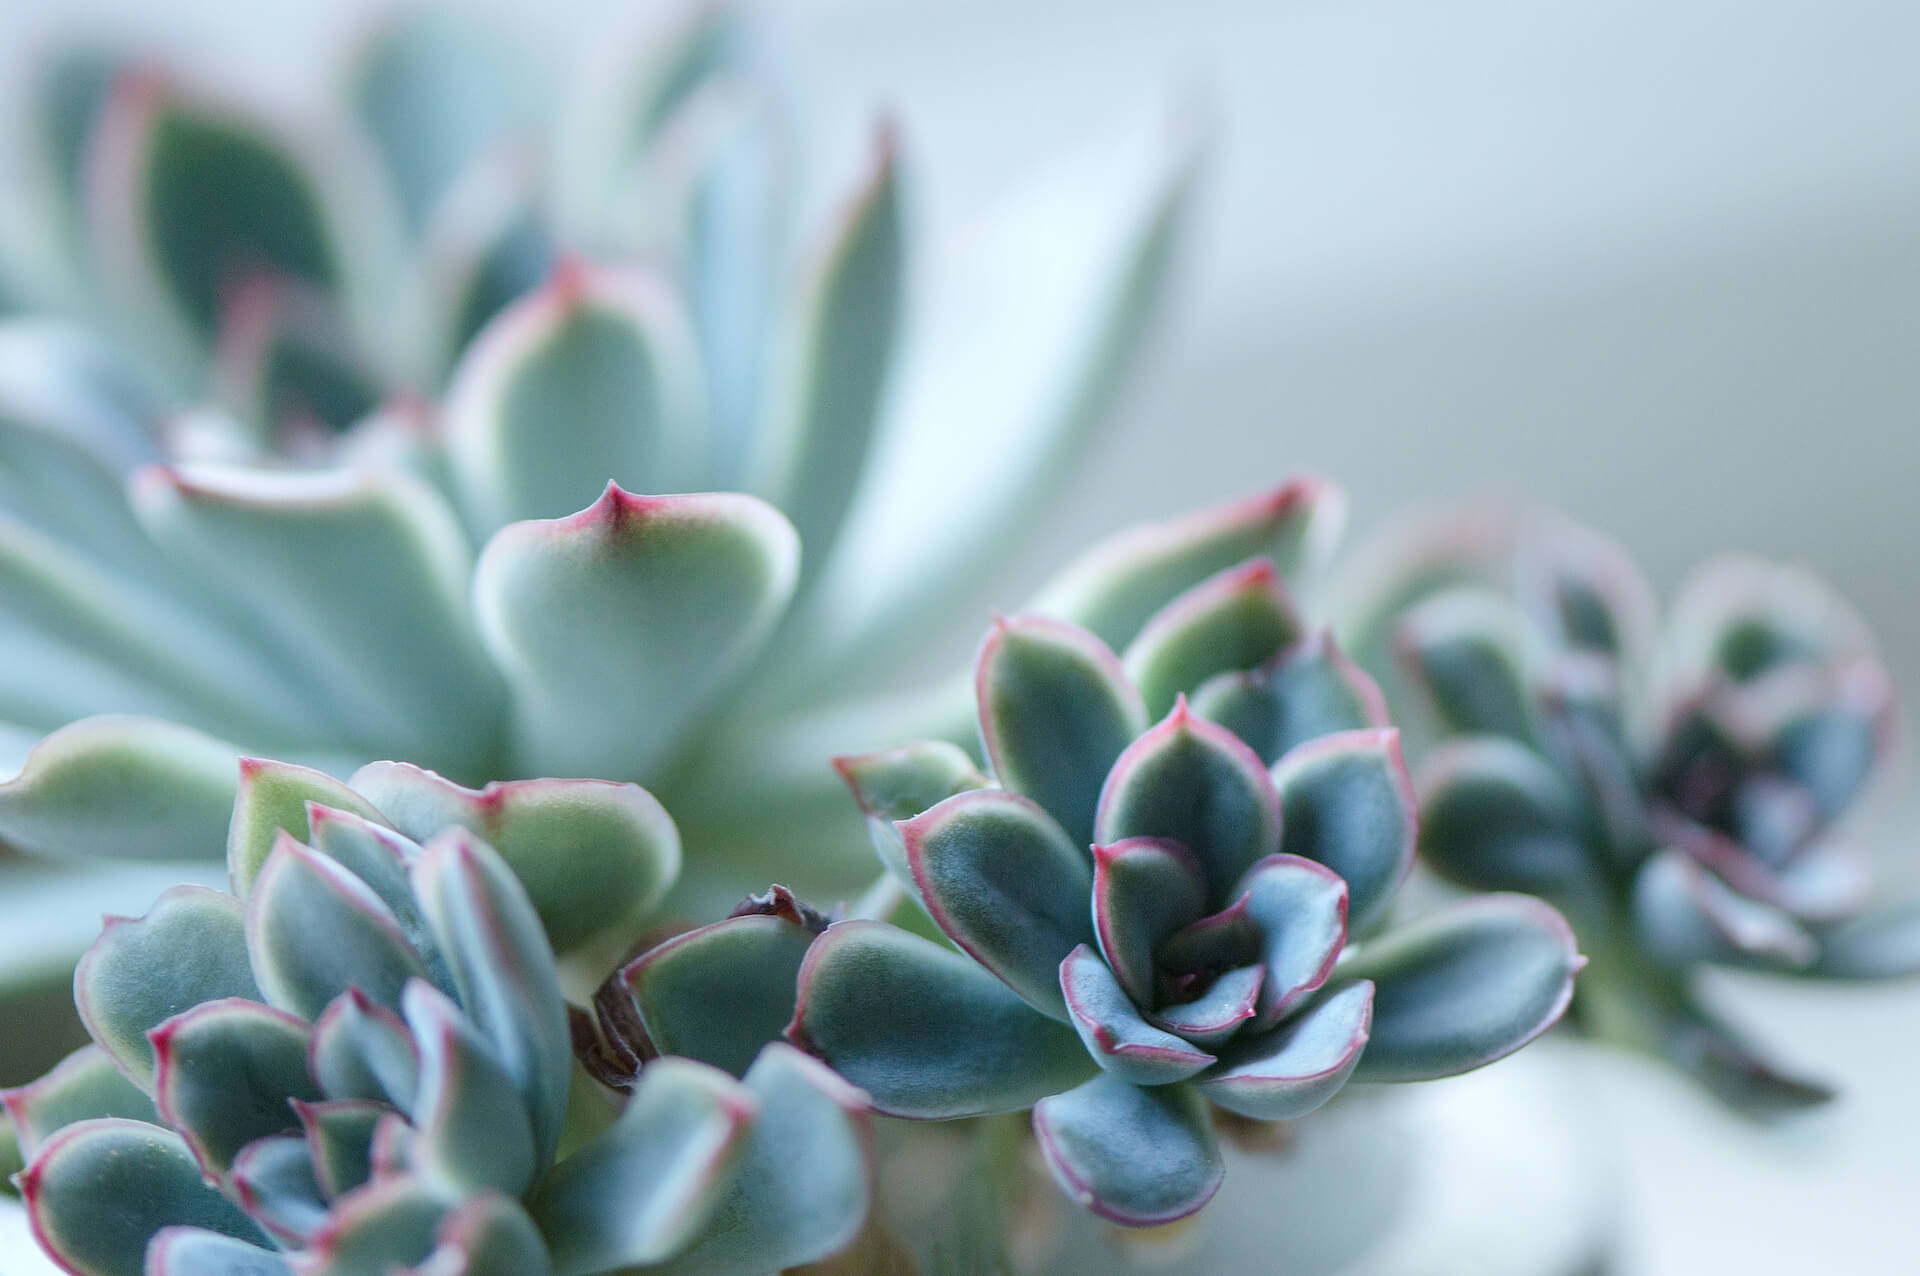 Echeveria with its chicks and bright colored leaves.